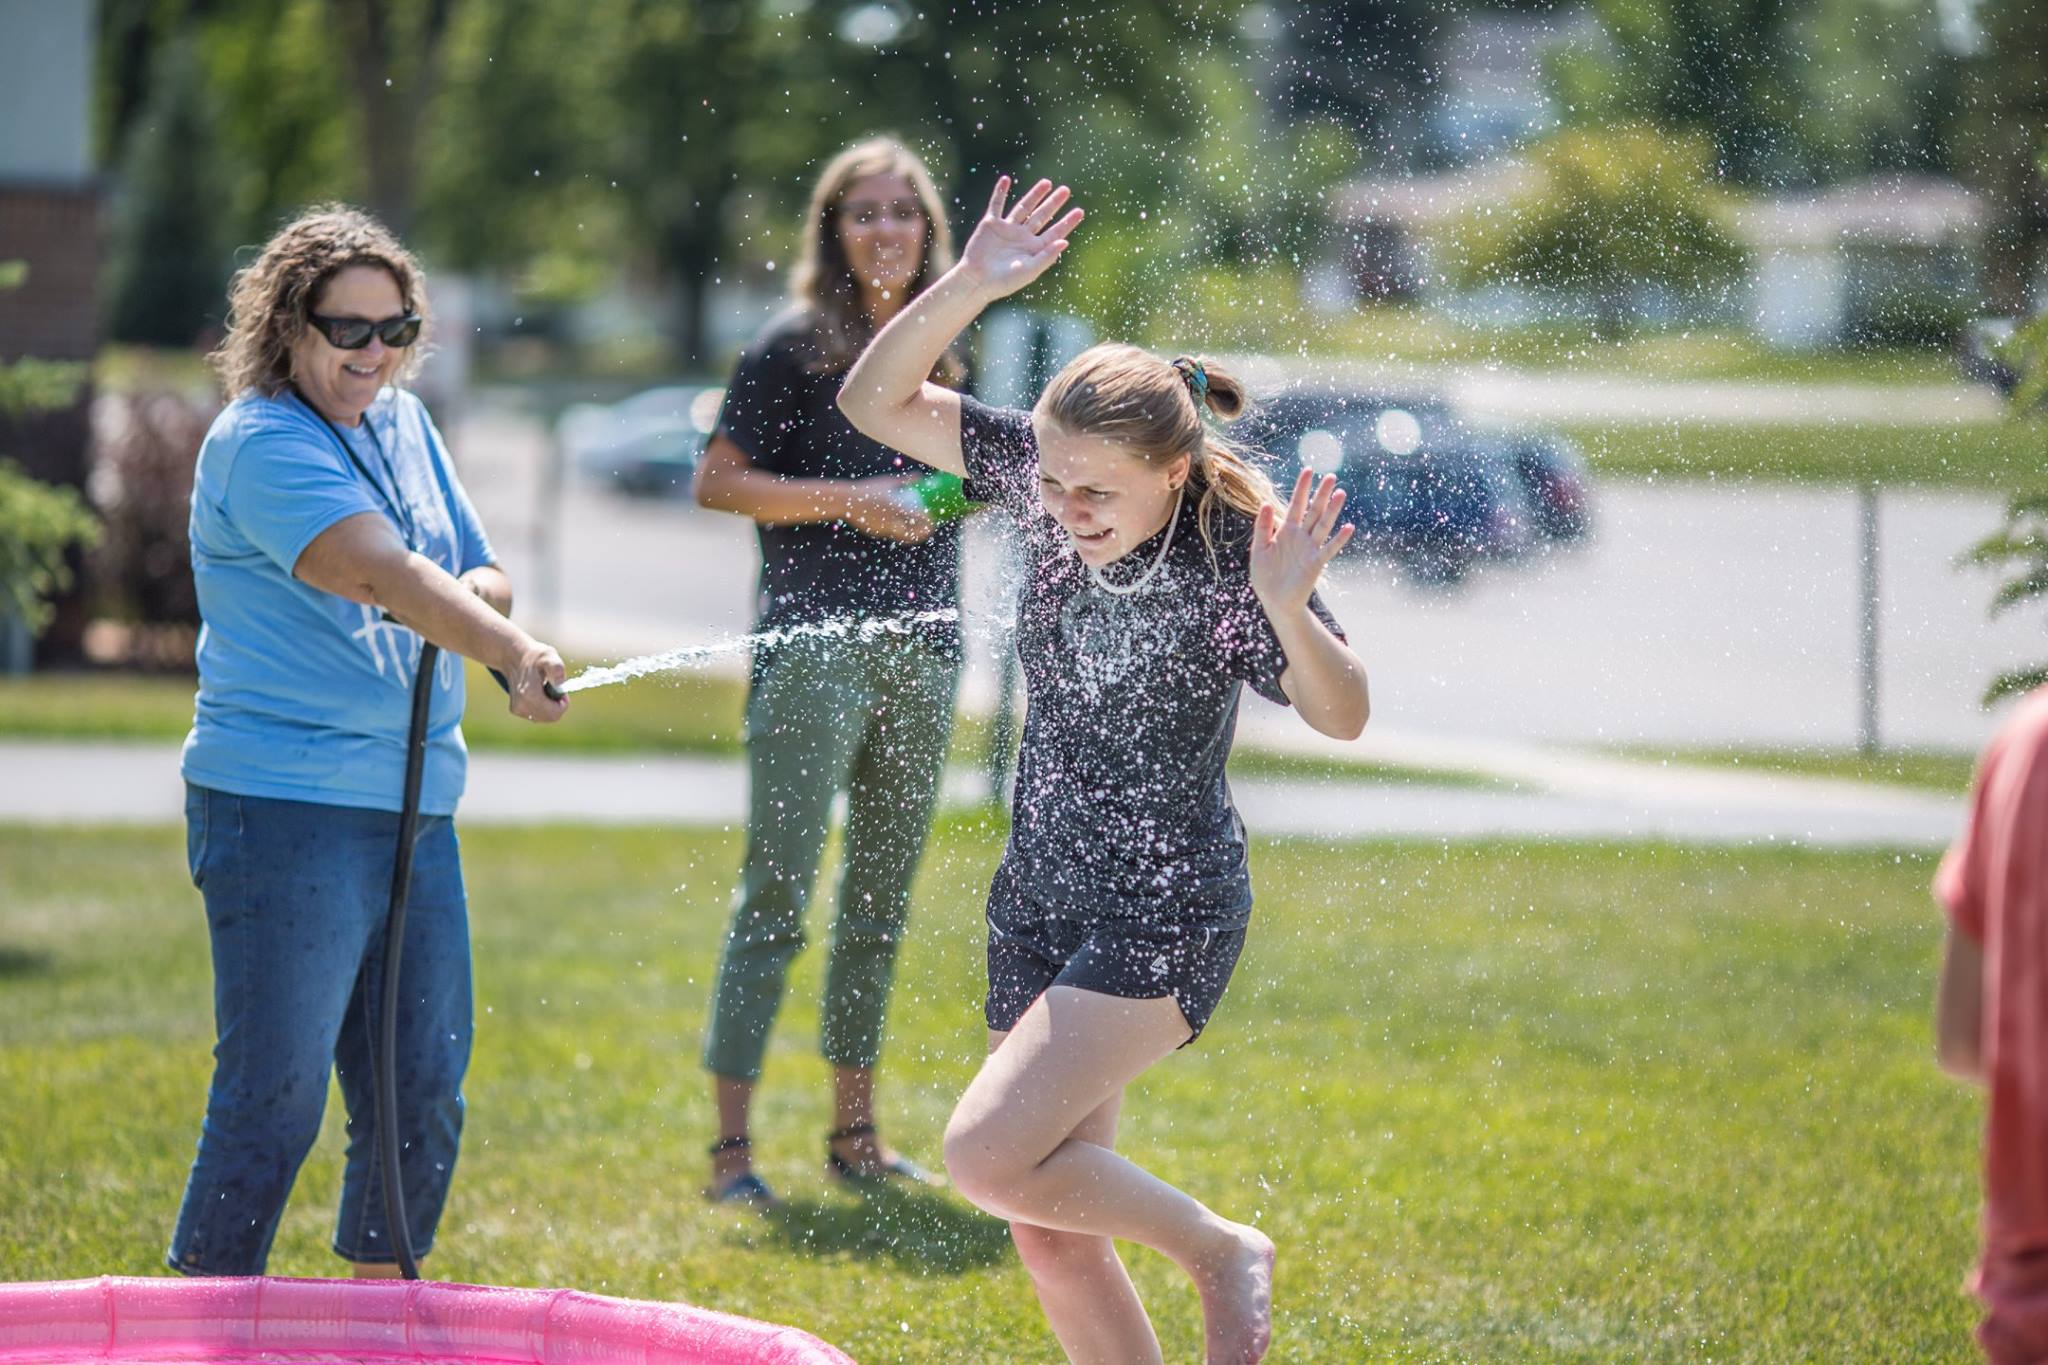 Students enjoy slip-n-slide kickball as one of the many activities planned during weekends.